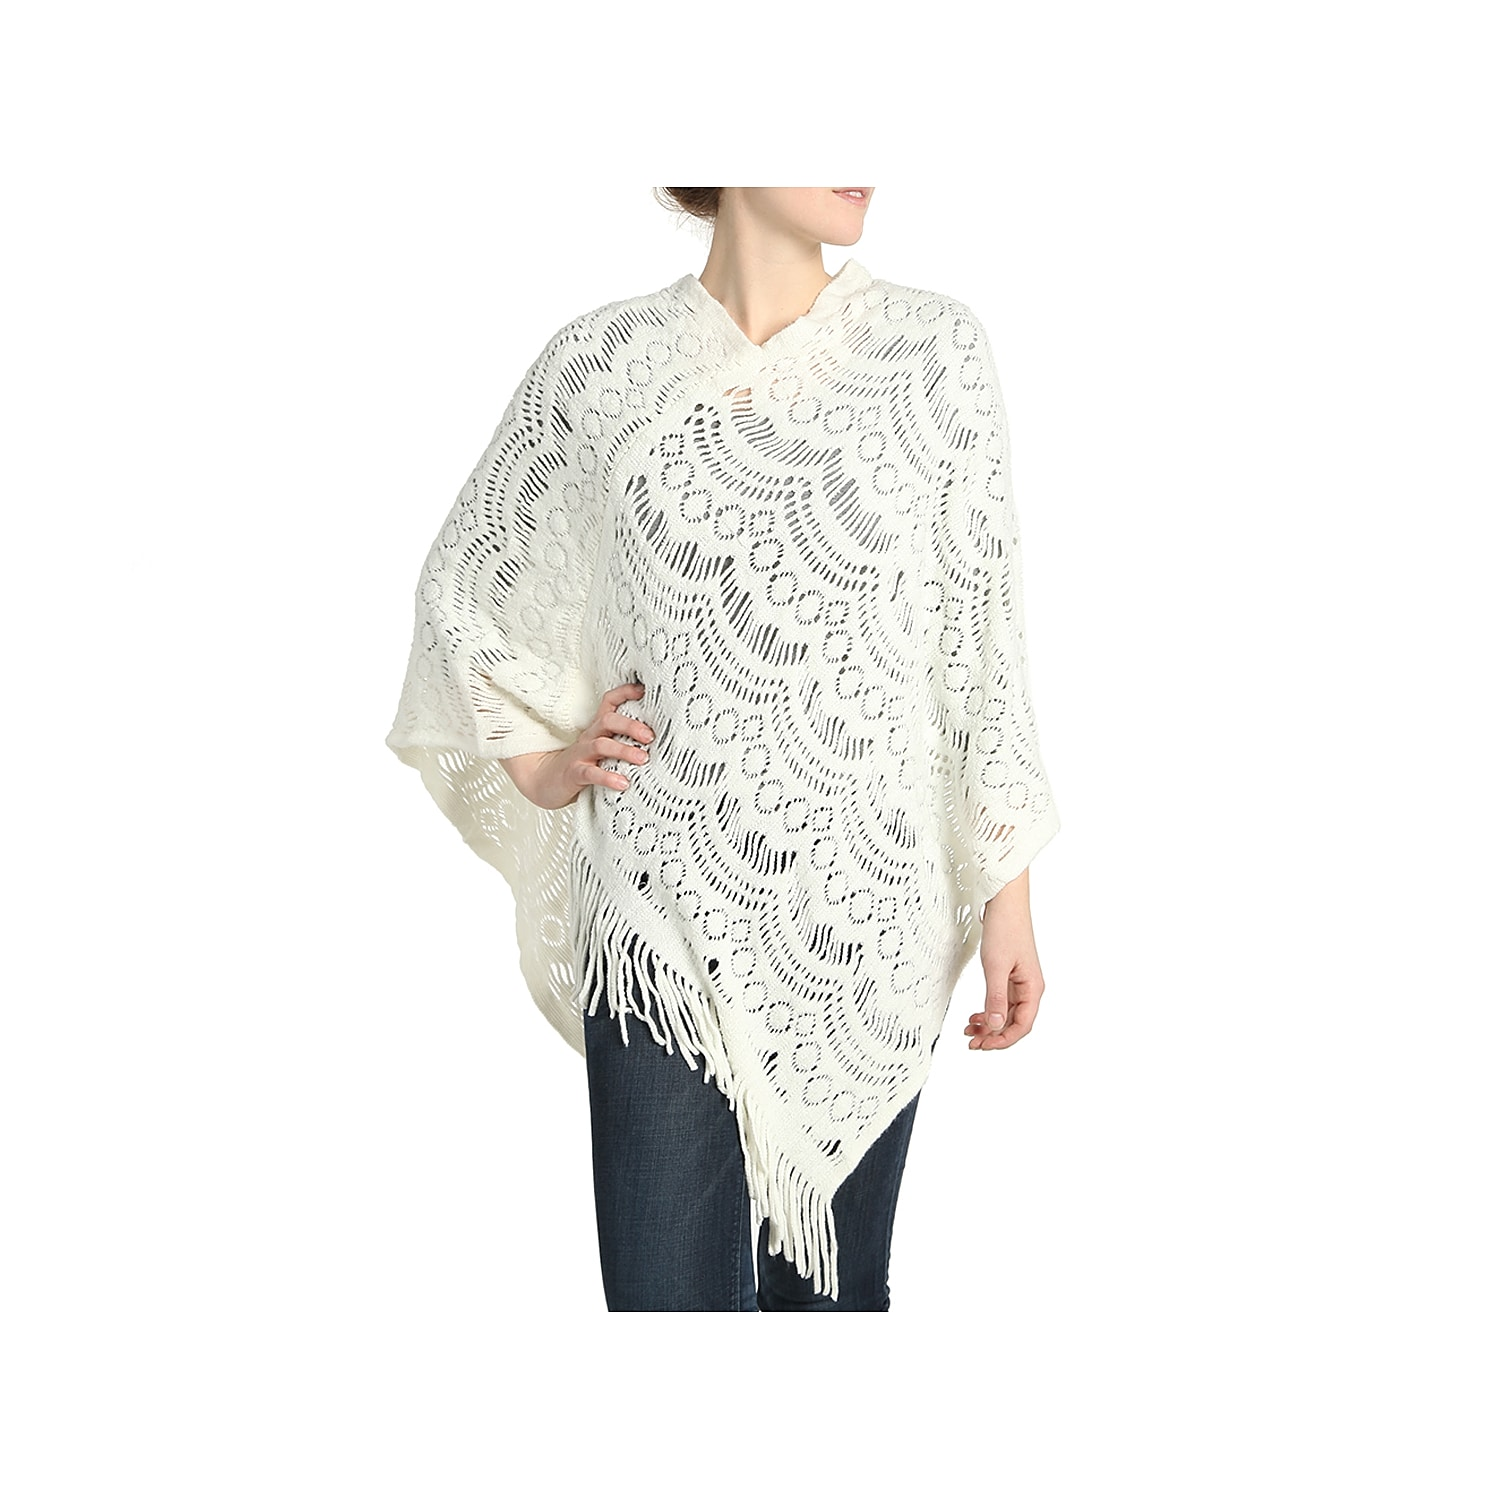 Throw on the Easy Breezy poncho from Kelly & Katie with your favorite pair of jeans to stay cozy all season long. A thick knit construction and fringe trim finishes this wrap for trendy style.  Want more style inspiration? Click here to shop accessories!